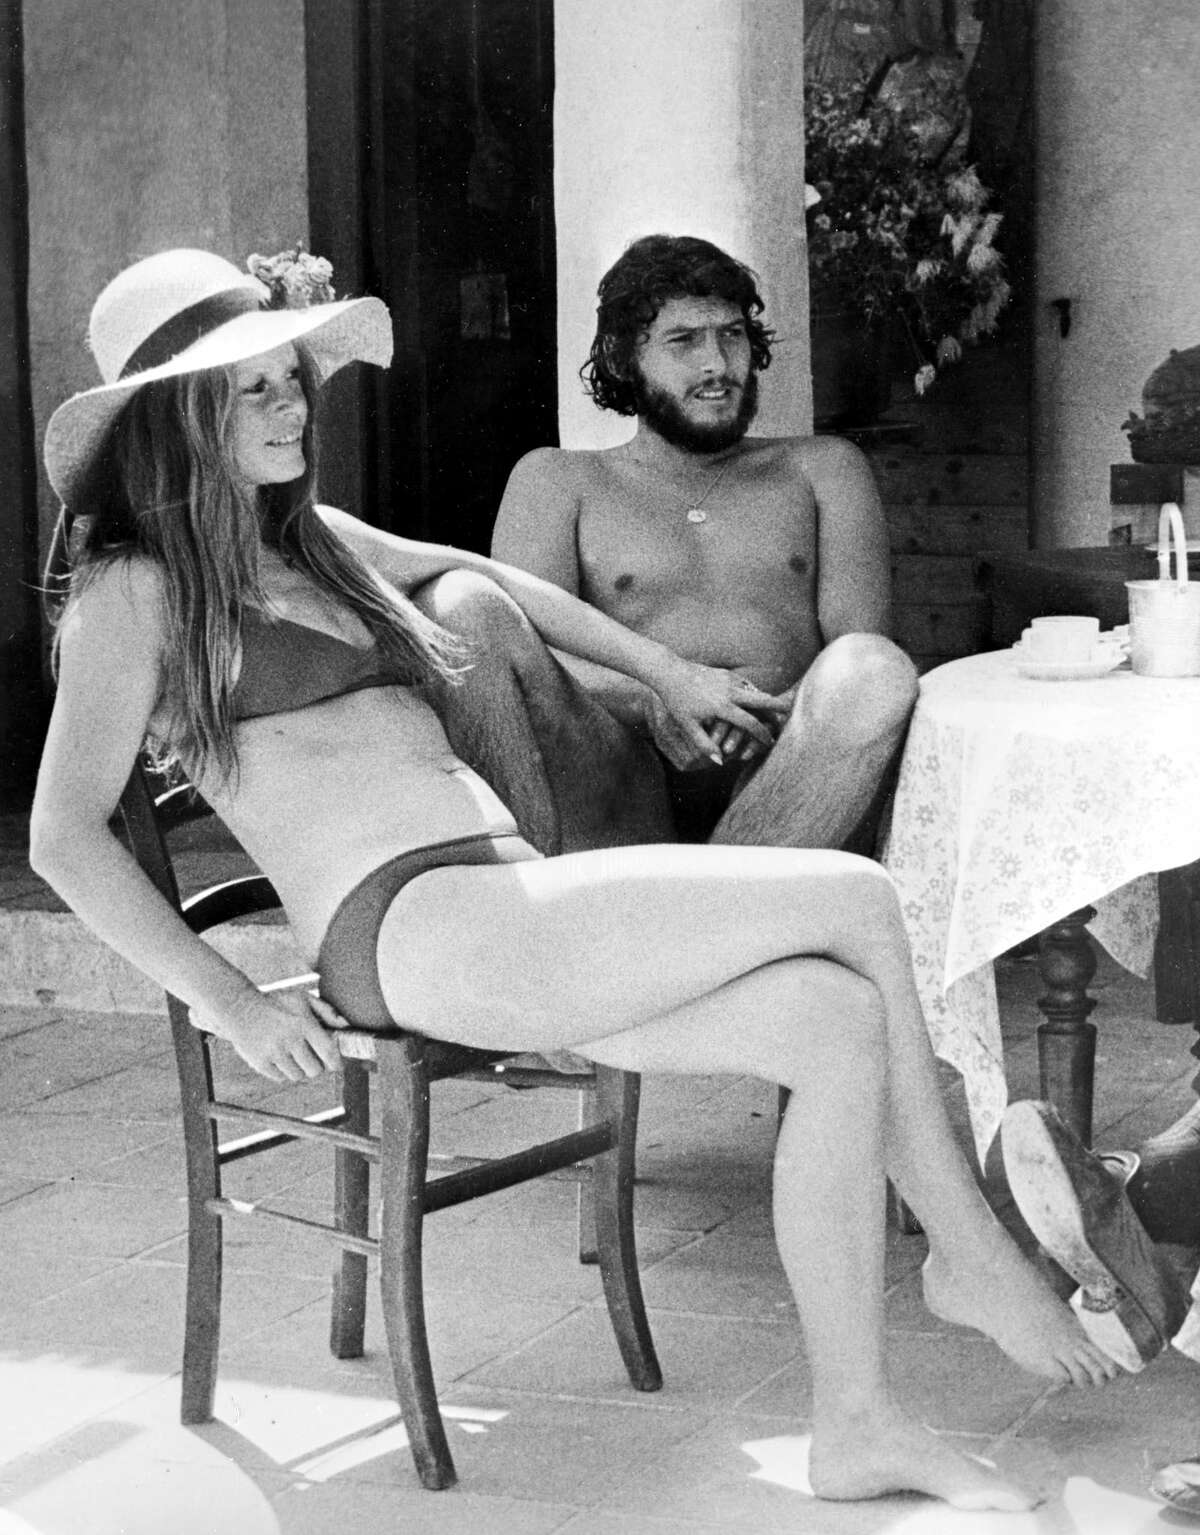 Brigitte Bardot in 1973, the year she retired from modeling and acting and began focusing on animal-rights activism. Bardot turned 78 in September 28, 2012.